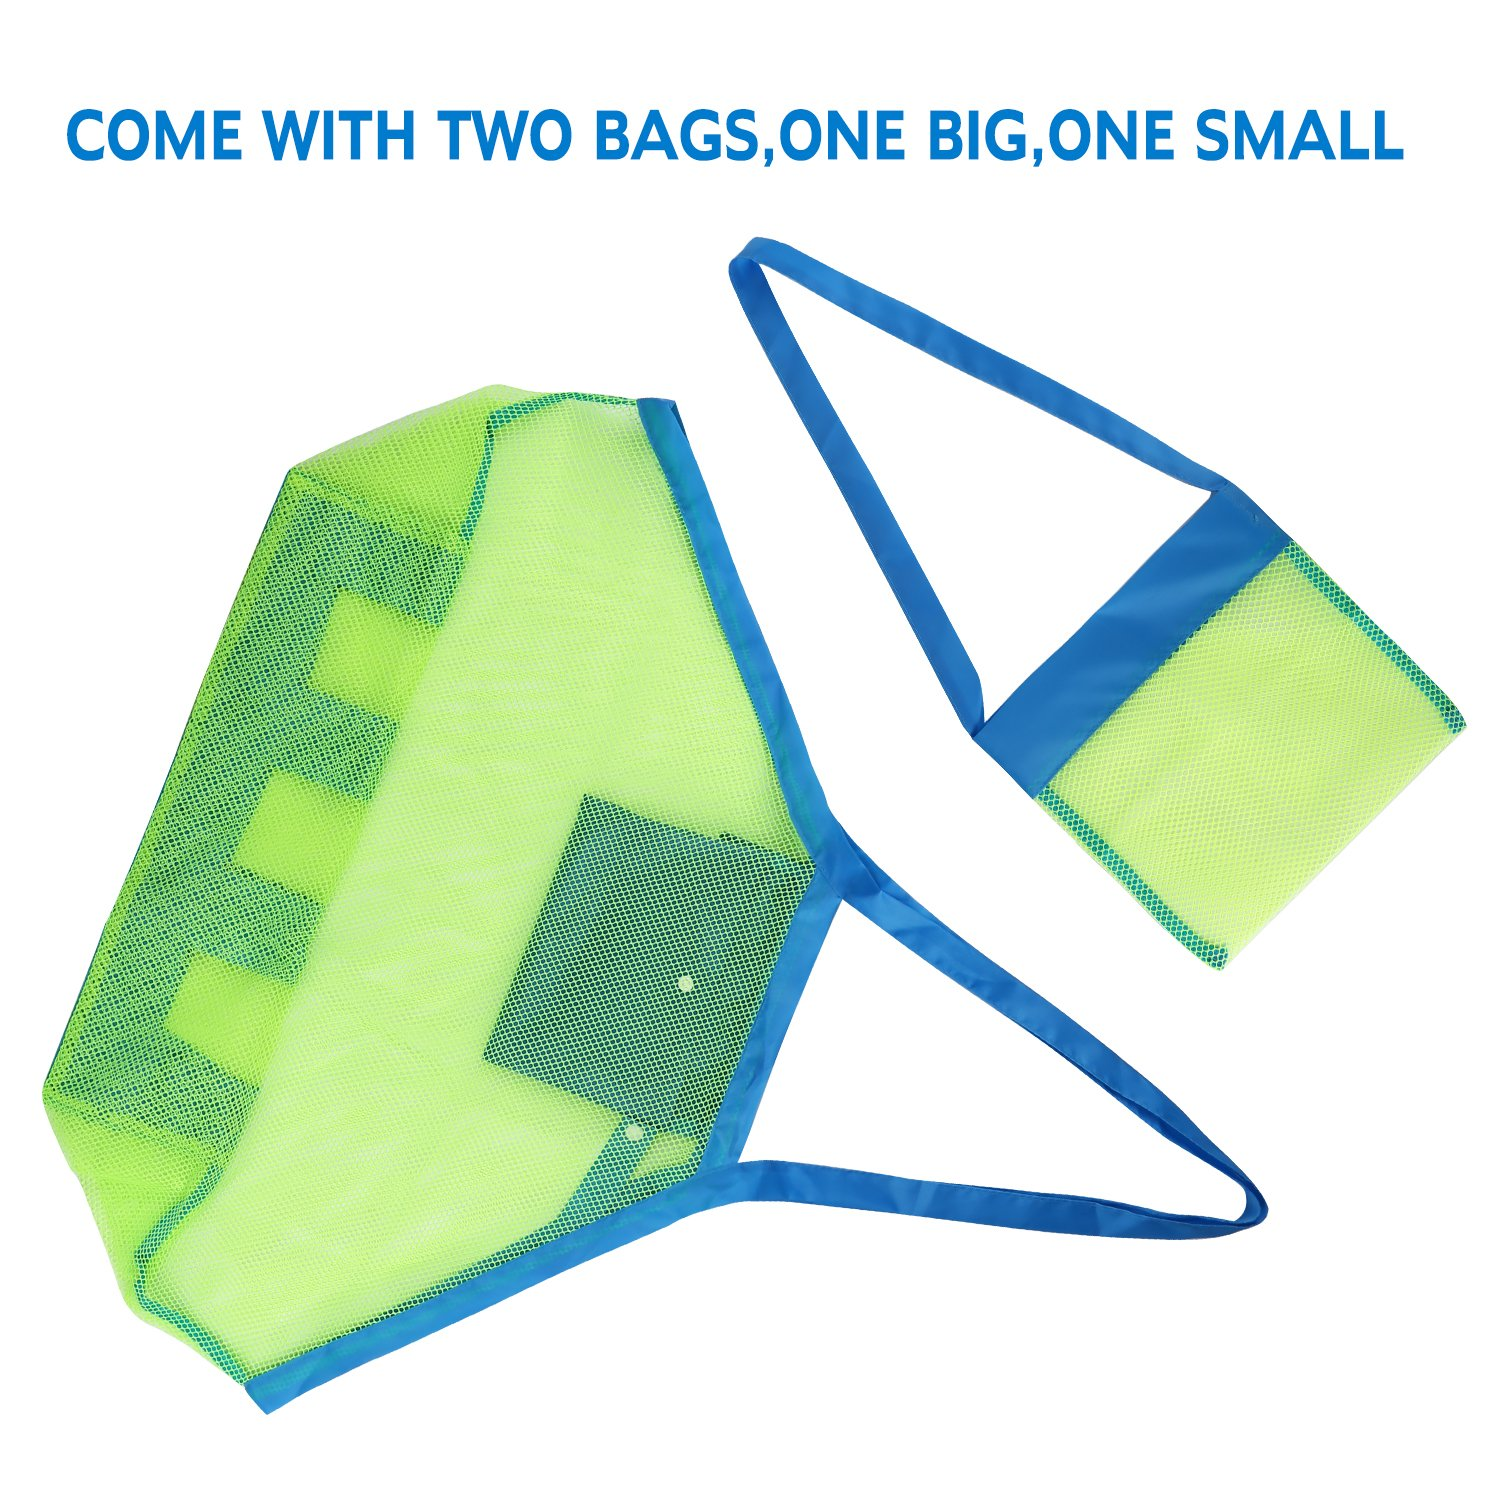 Large /&Small Sturdy Toy Bags Shell,Toys,Towels Groceries Sand Can Ideal for Beach G4Free Portable Beach Mesh Tote Bag 2pack Pool,Boat